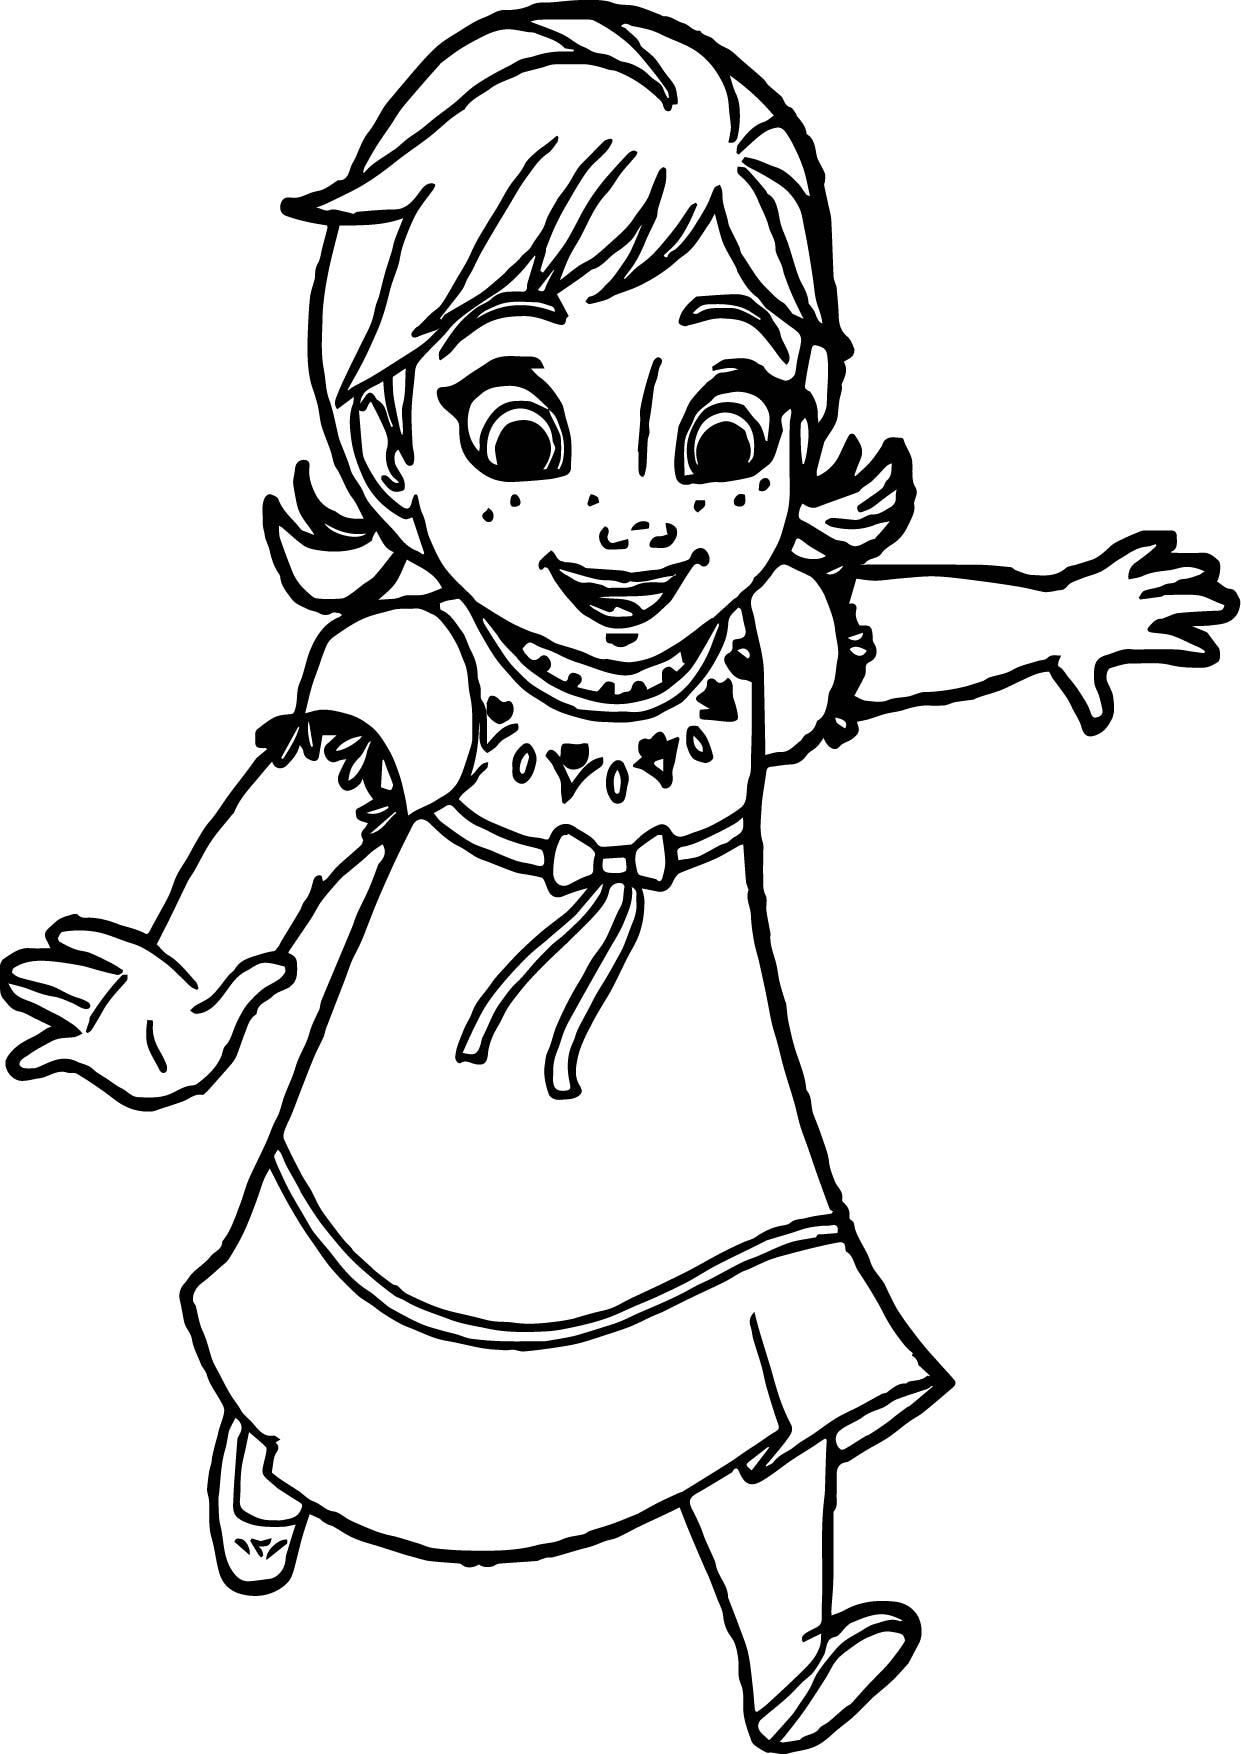 Anna Coloring Pages Delectable Young Anna Coloring Page  Wecoloringpage Decorating Inspiration